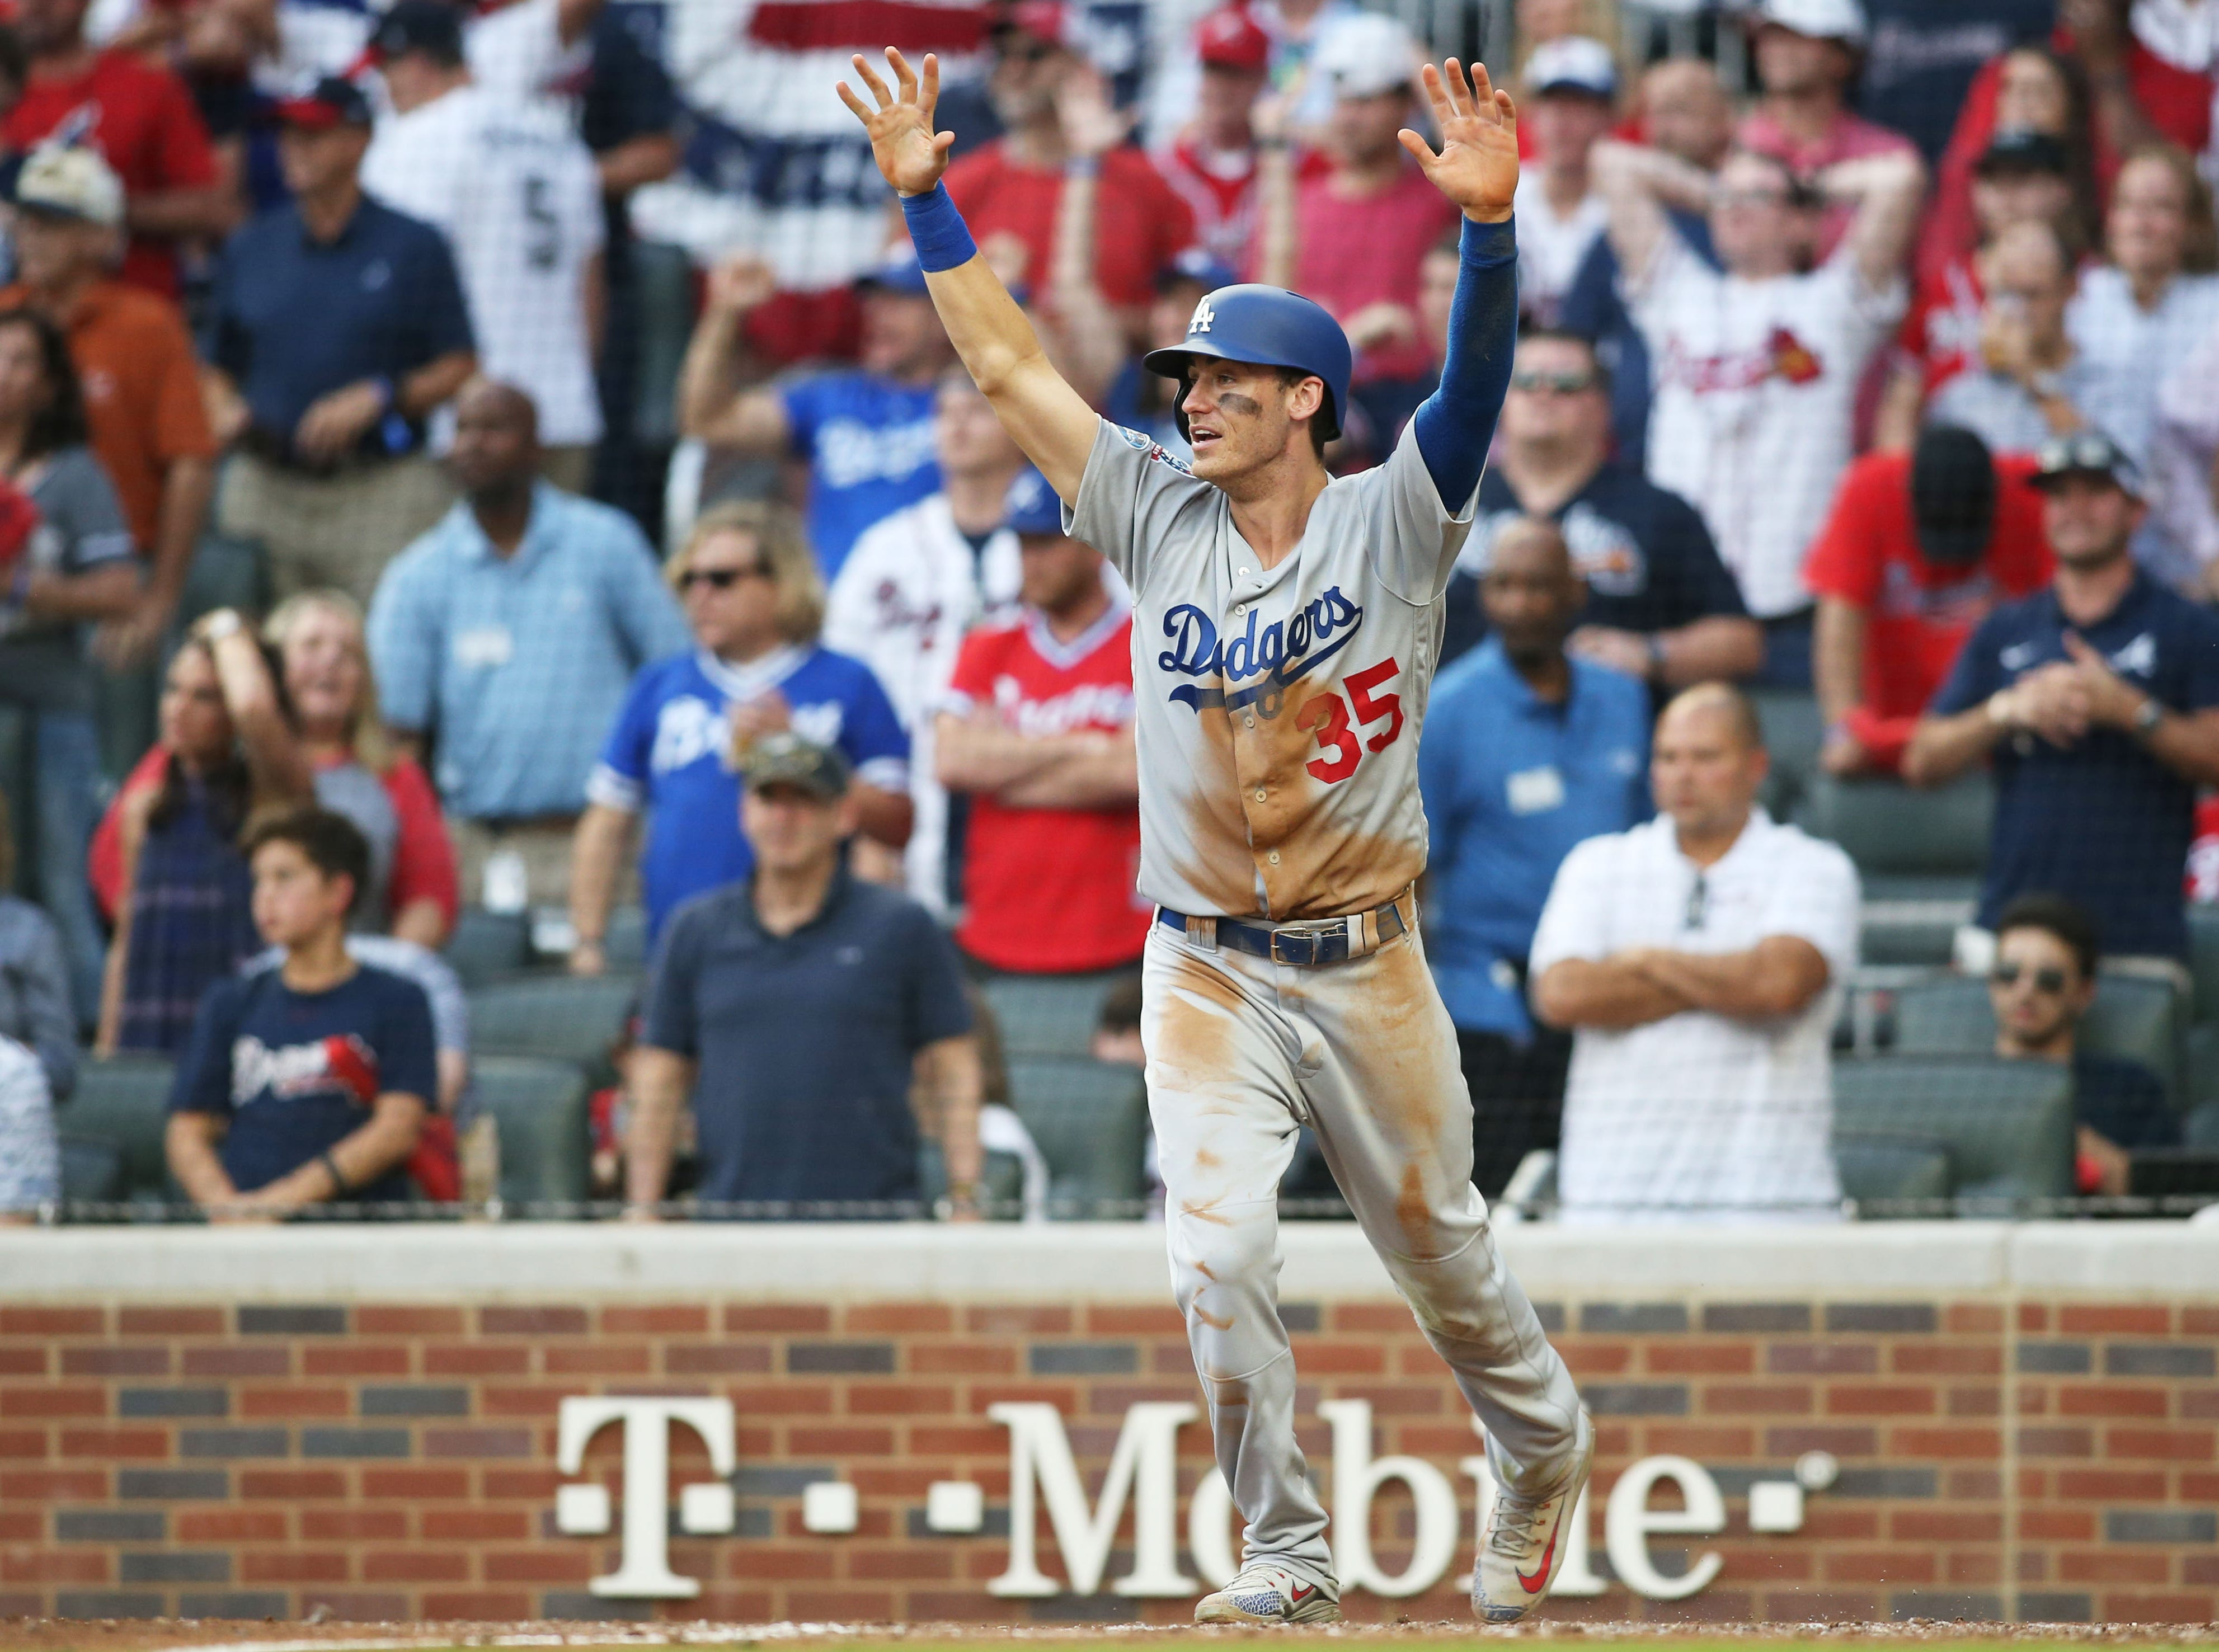 NLDS Game 4: Cody Bellinger reacts after scoring in the sixth inning.